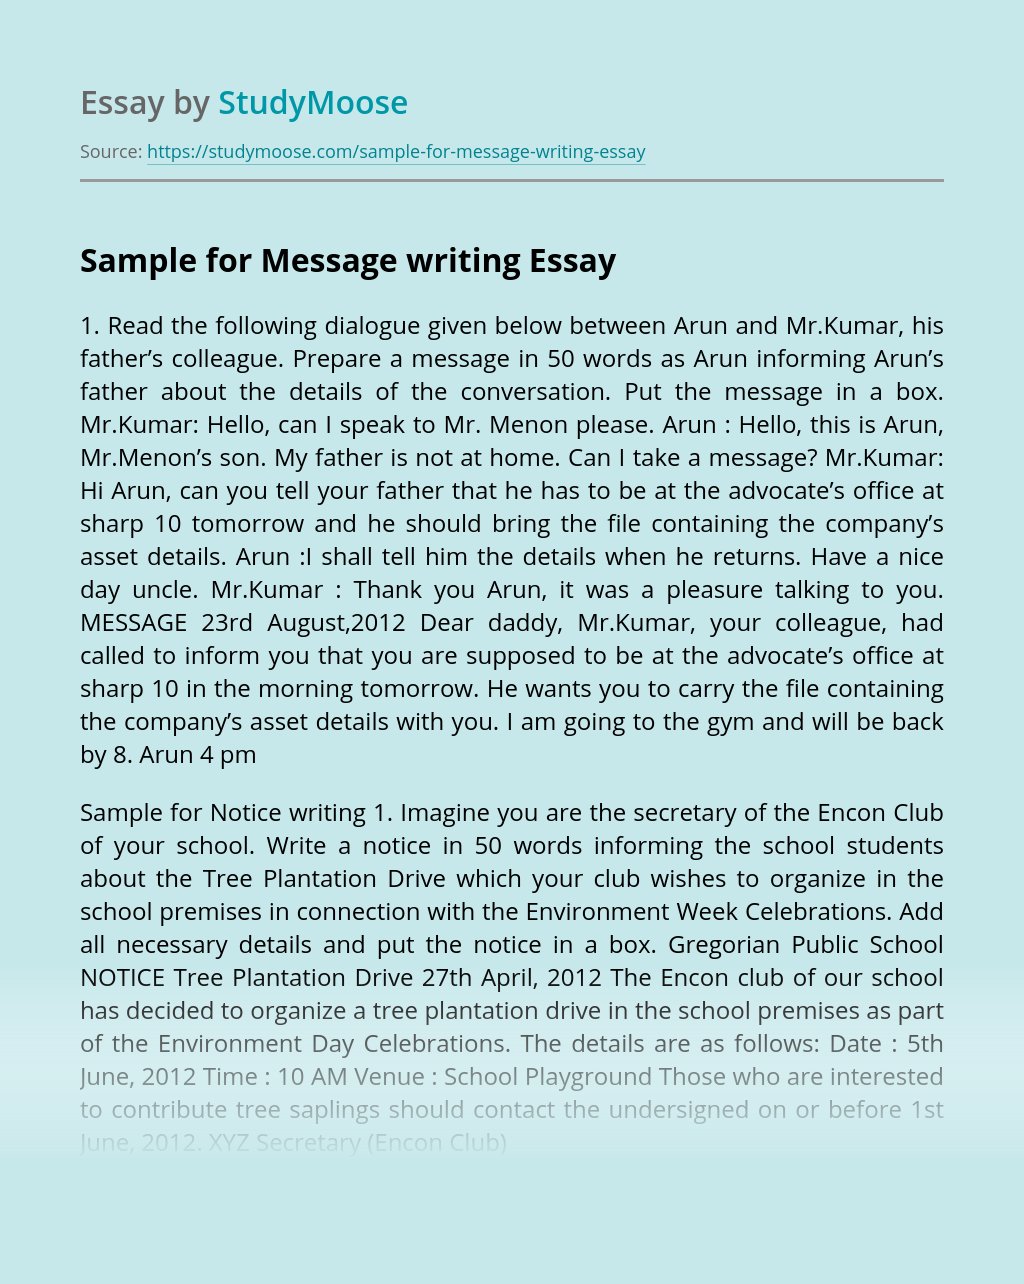 Sample for Message writing